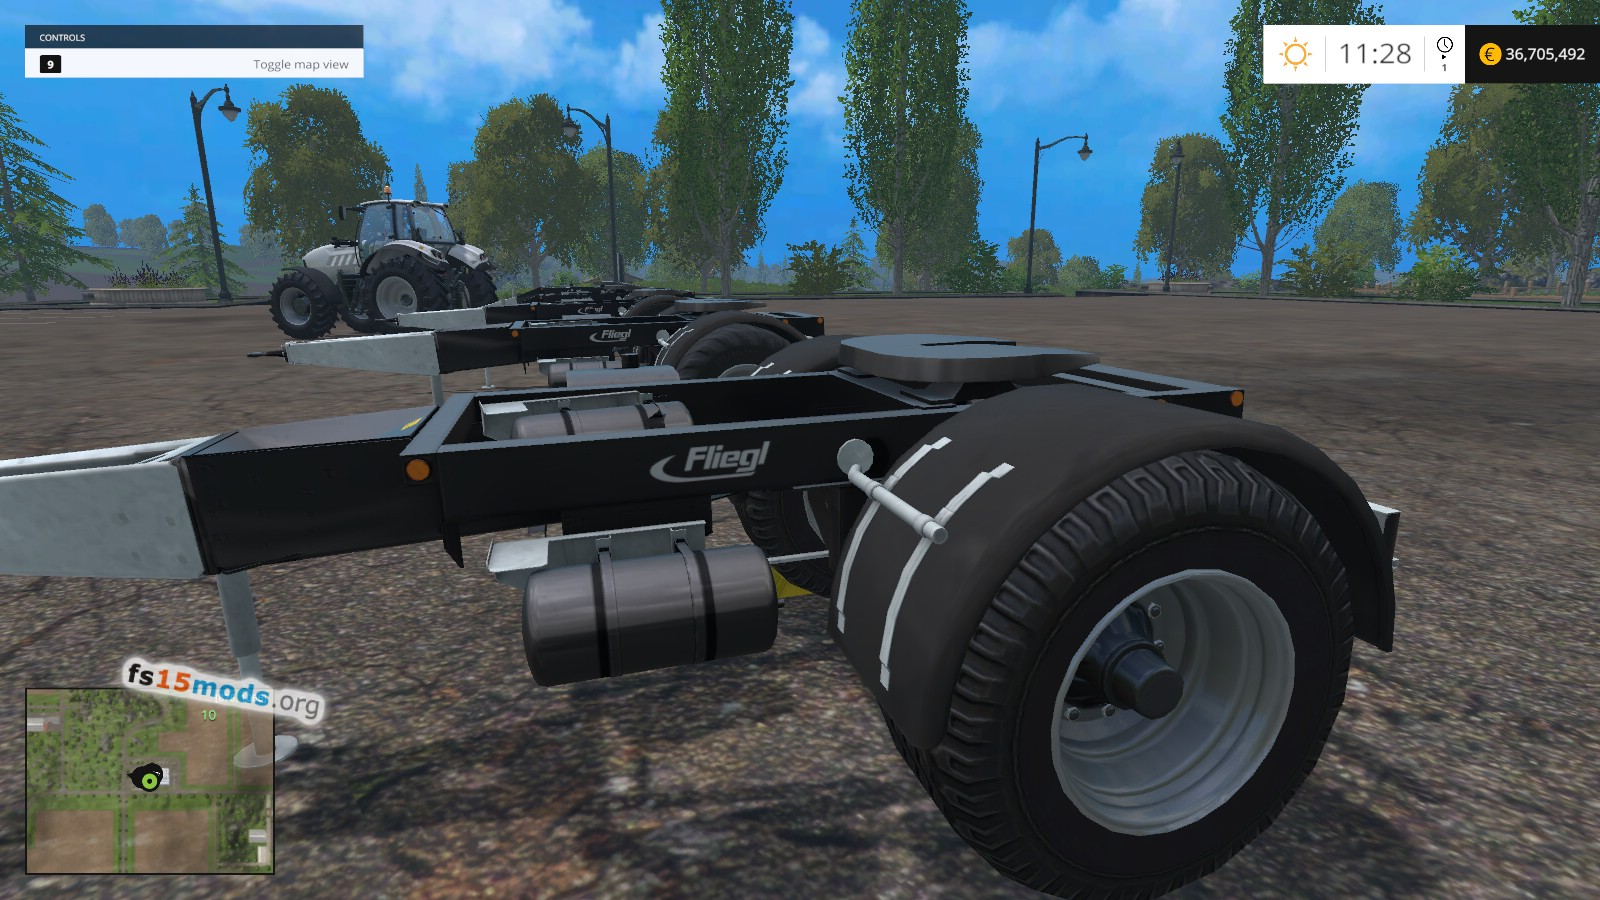 Fliegl Dolly Pack Fs15 Mods